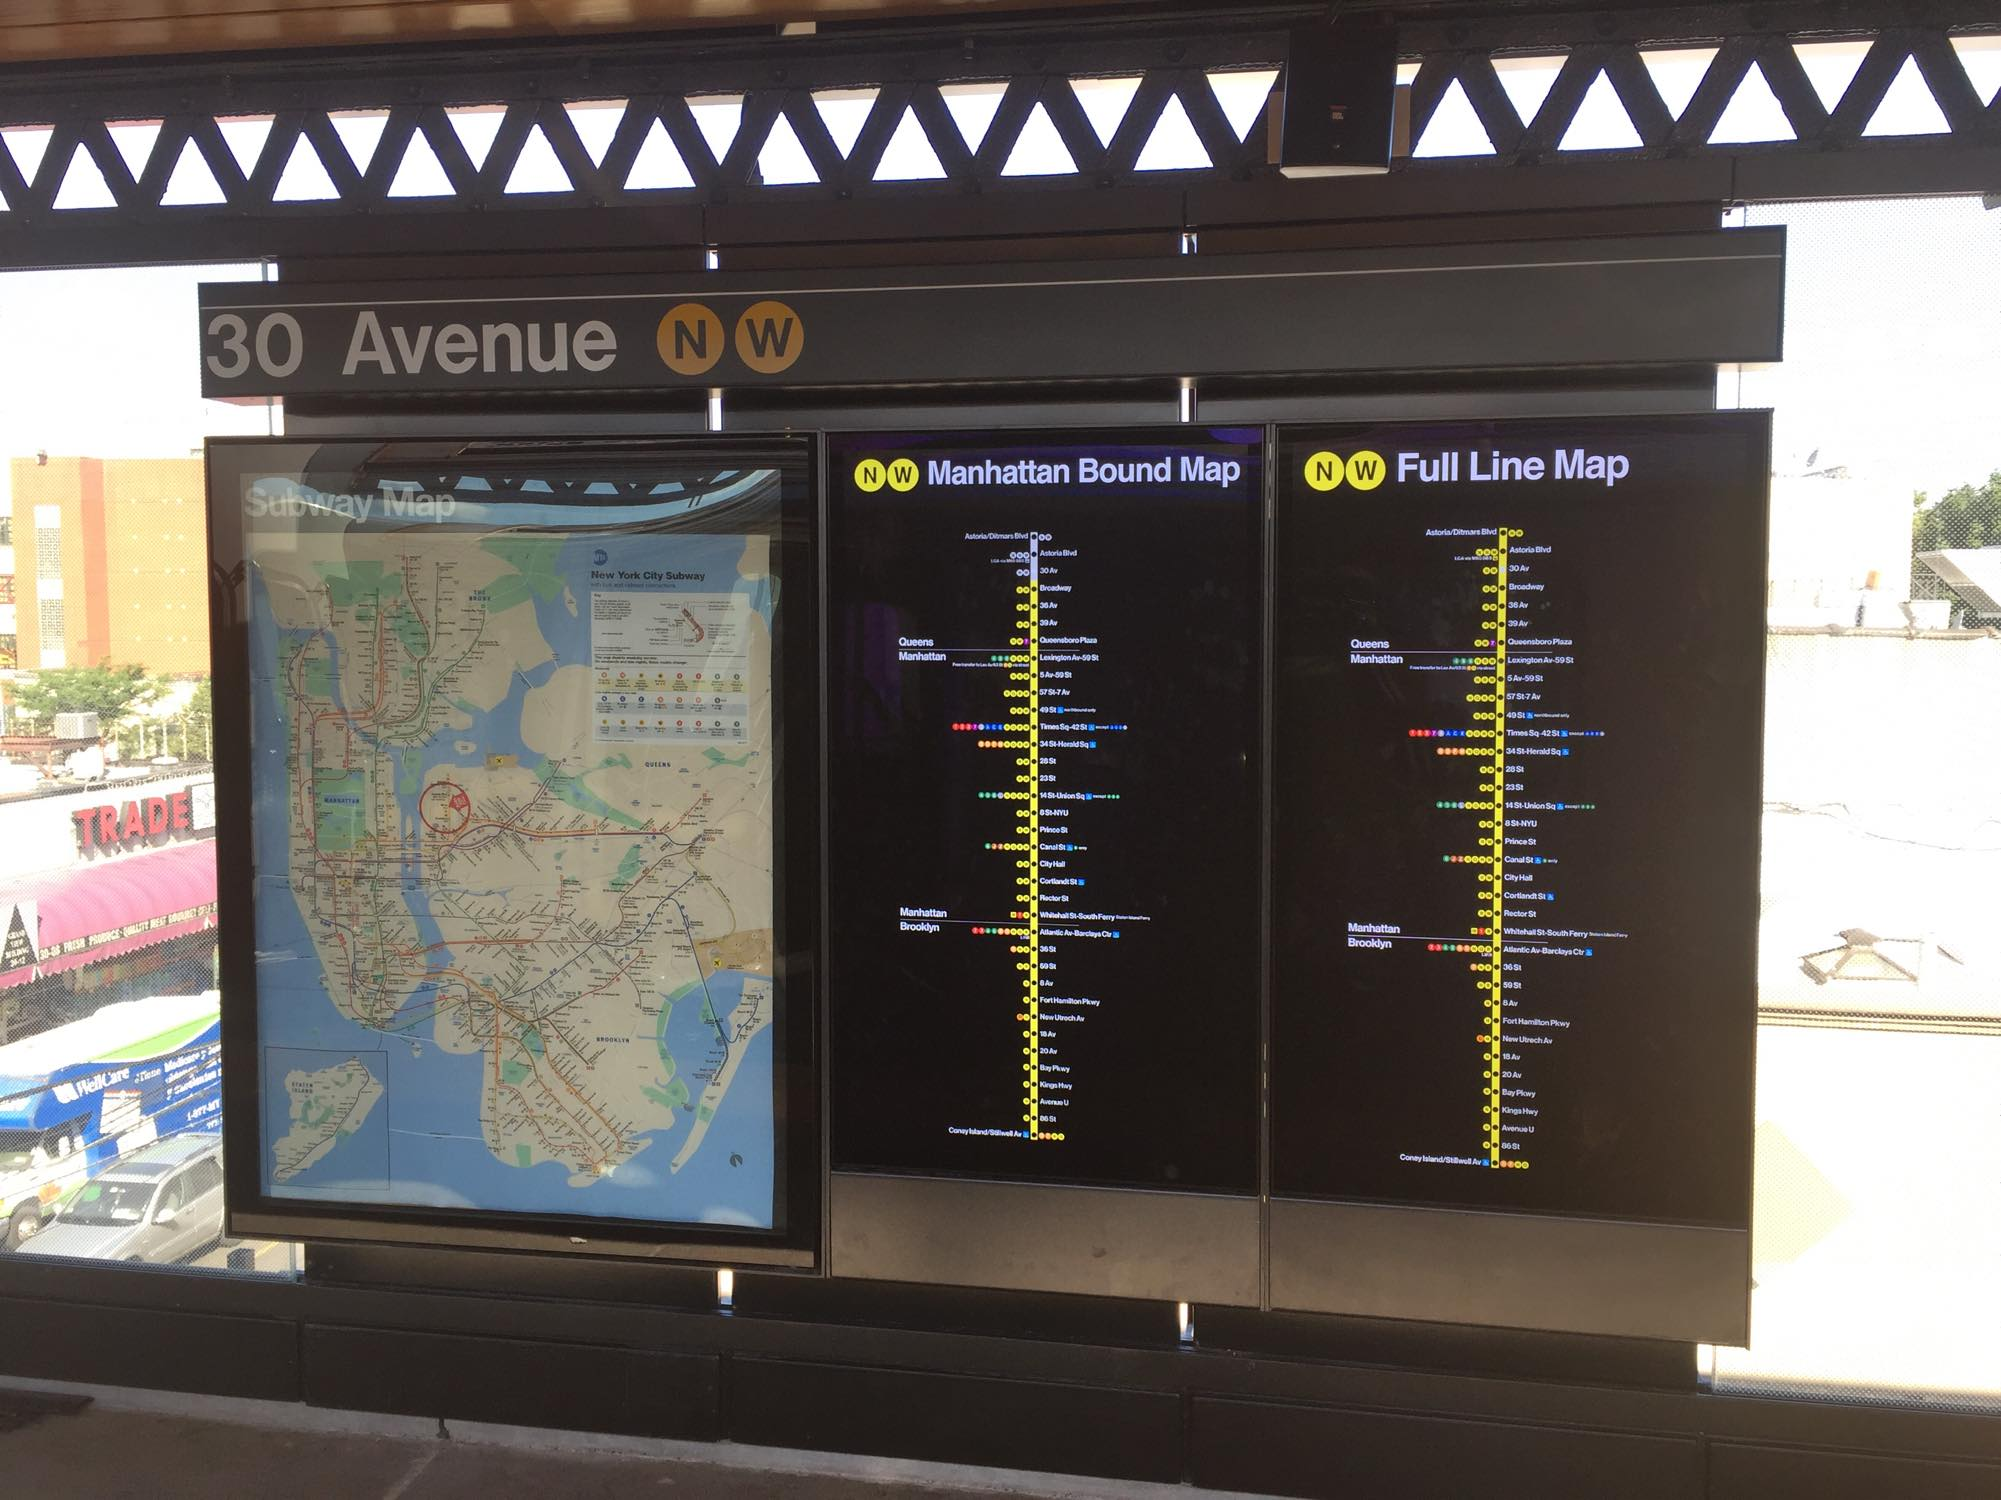 Astoria Subway Map.File Subway Map And Line Map At 30 Av N W Line Station Jpg